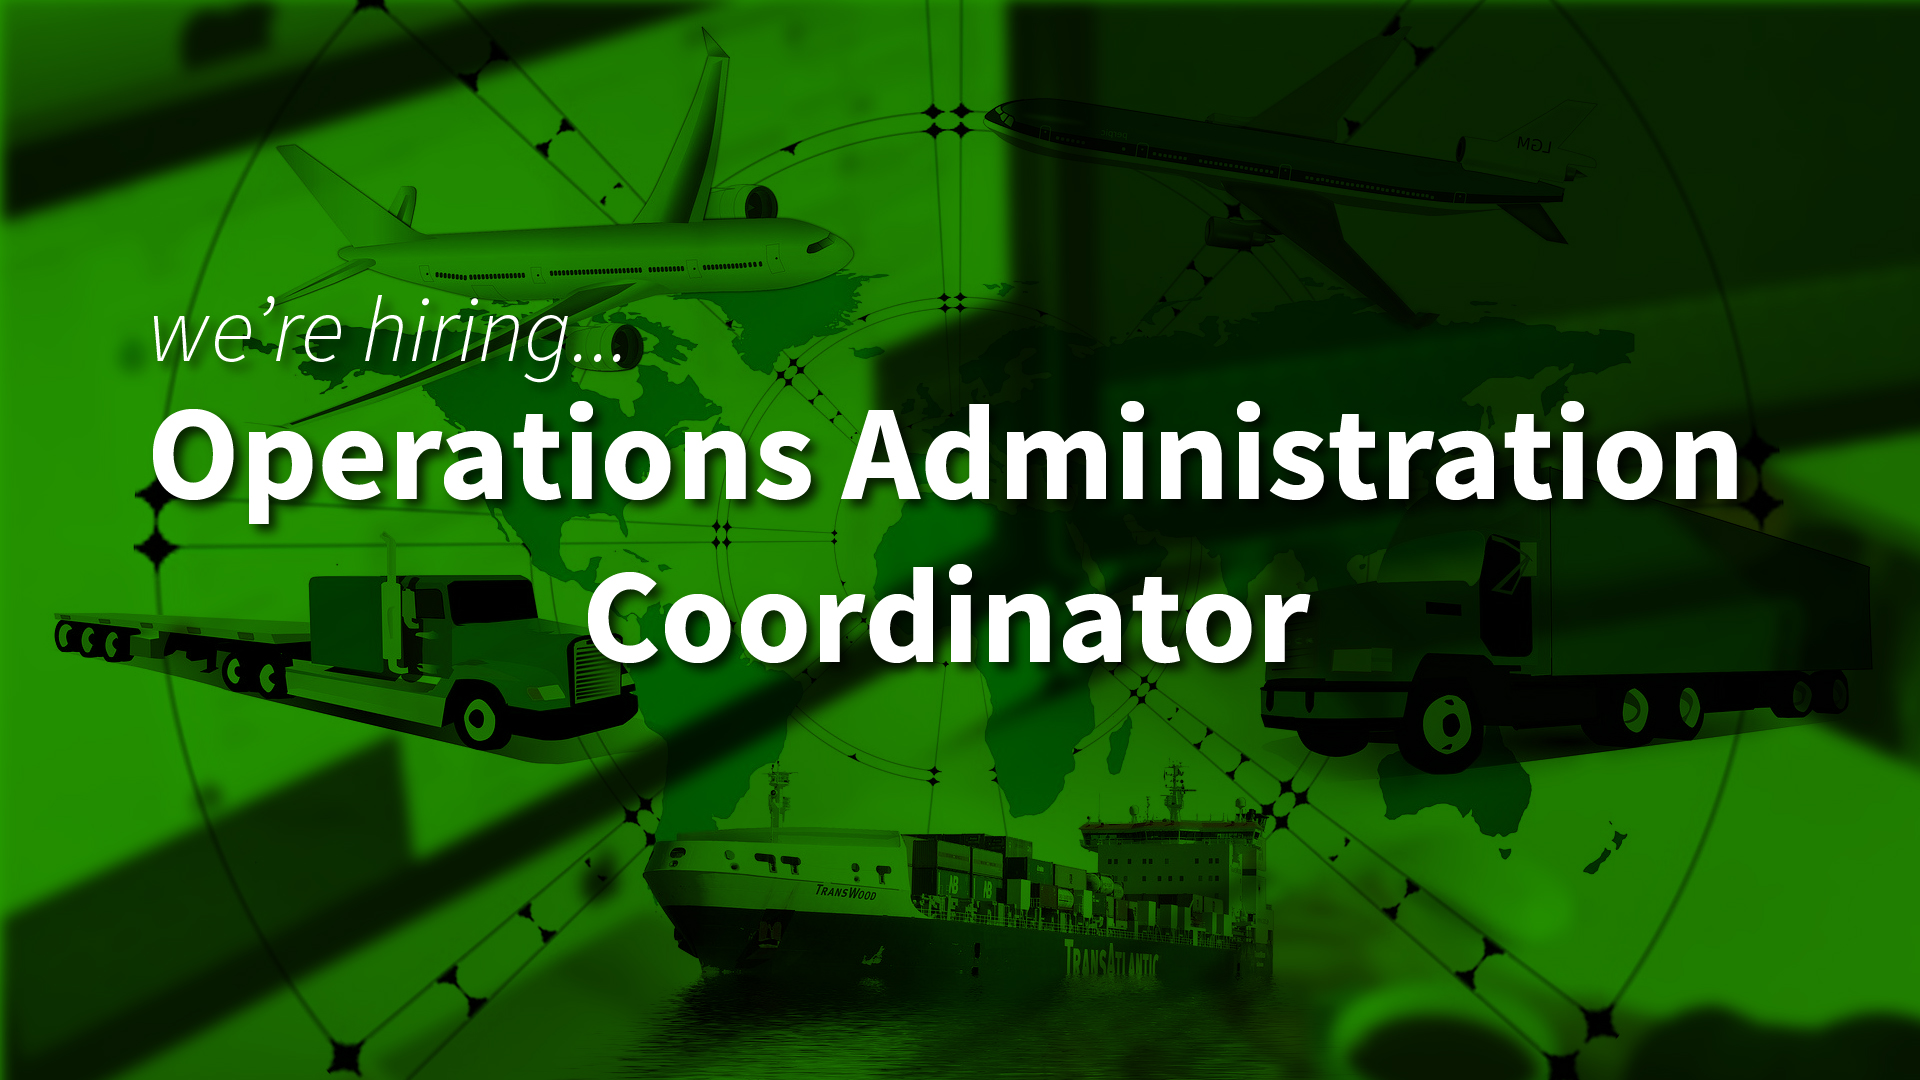 Operations Administration Coordinator